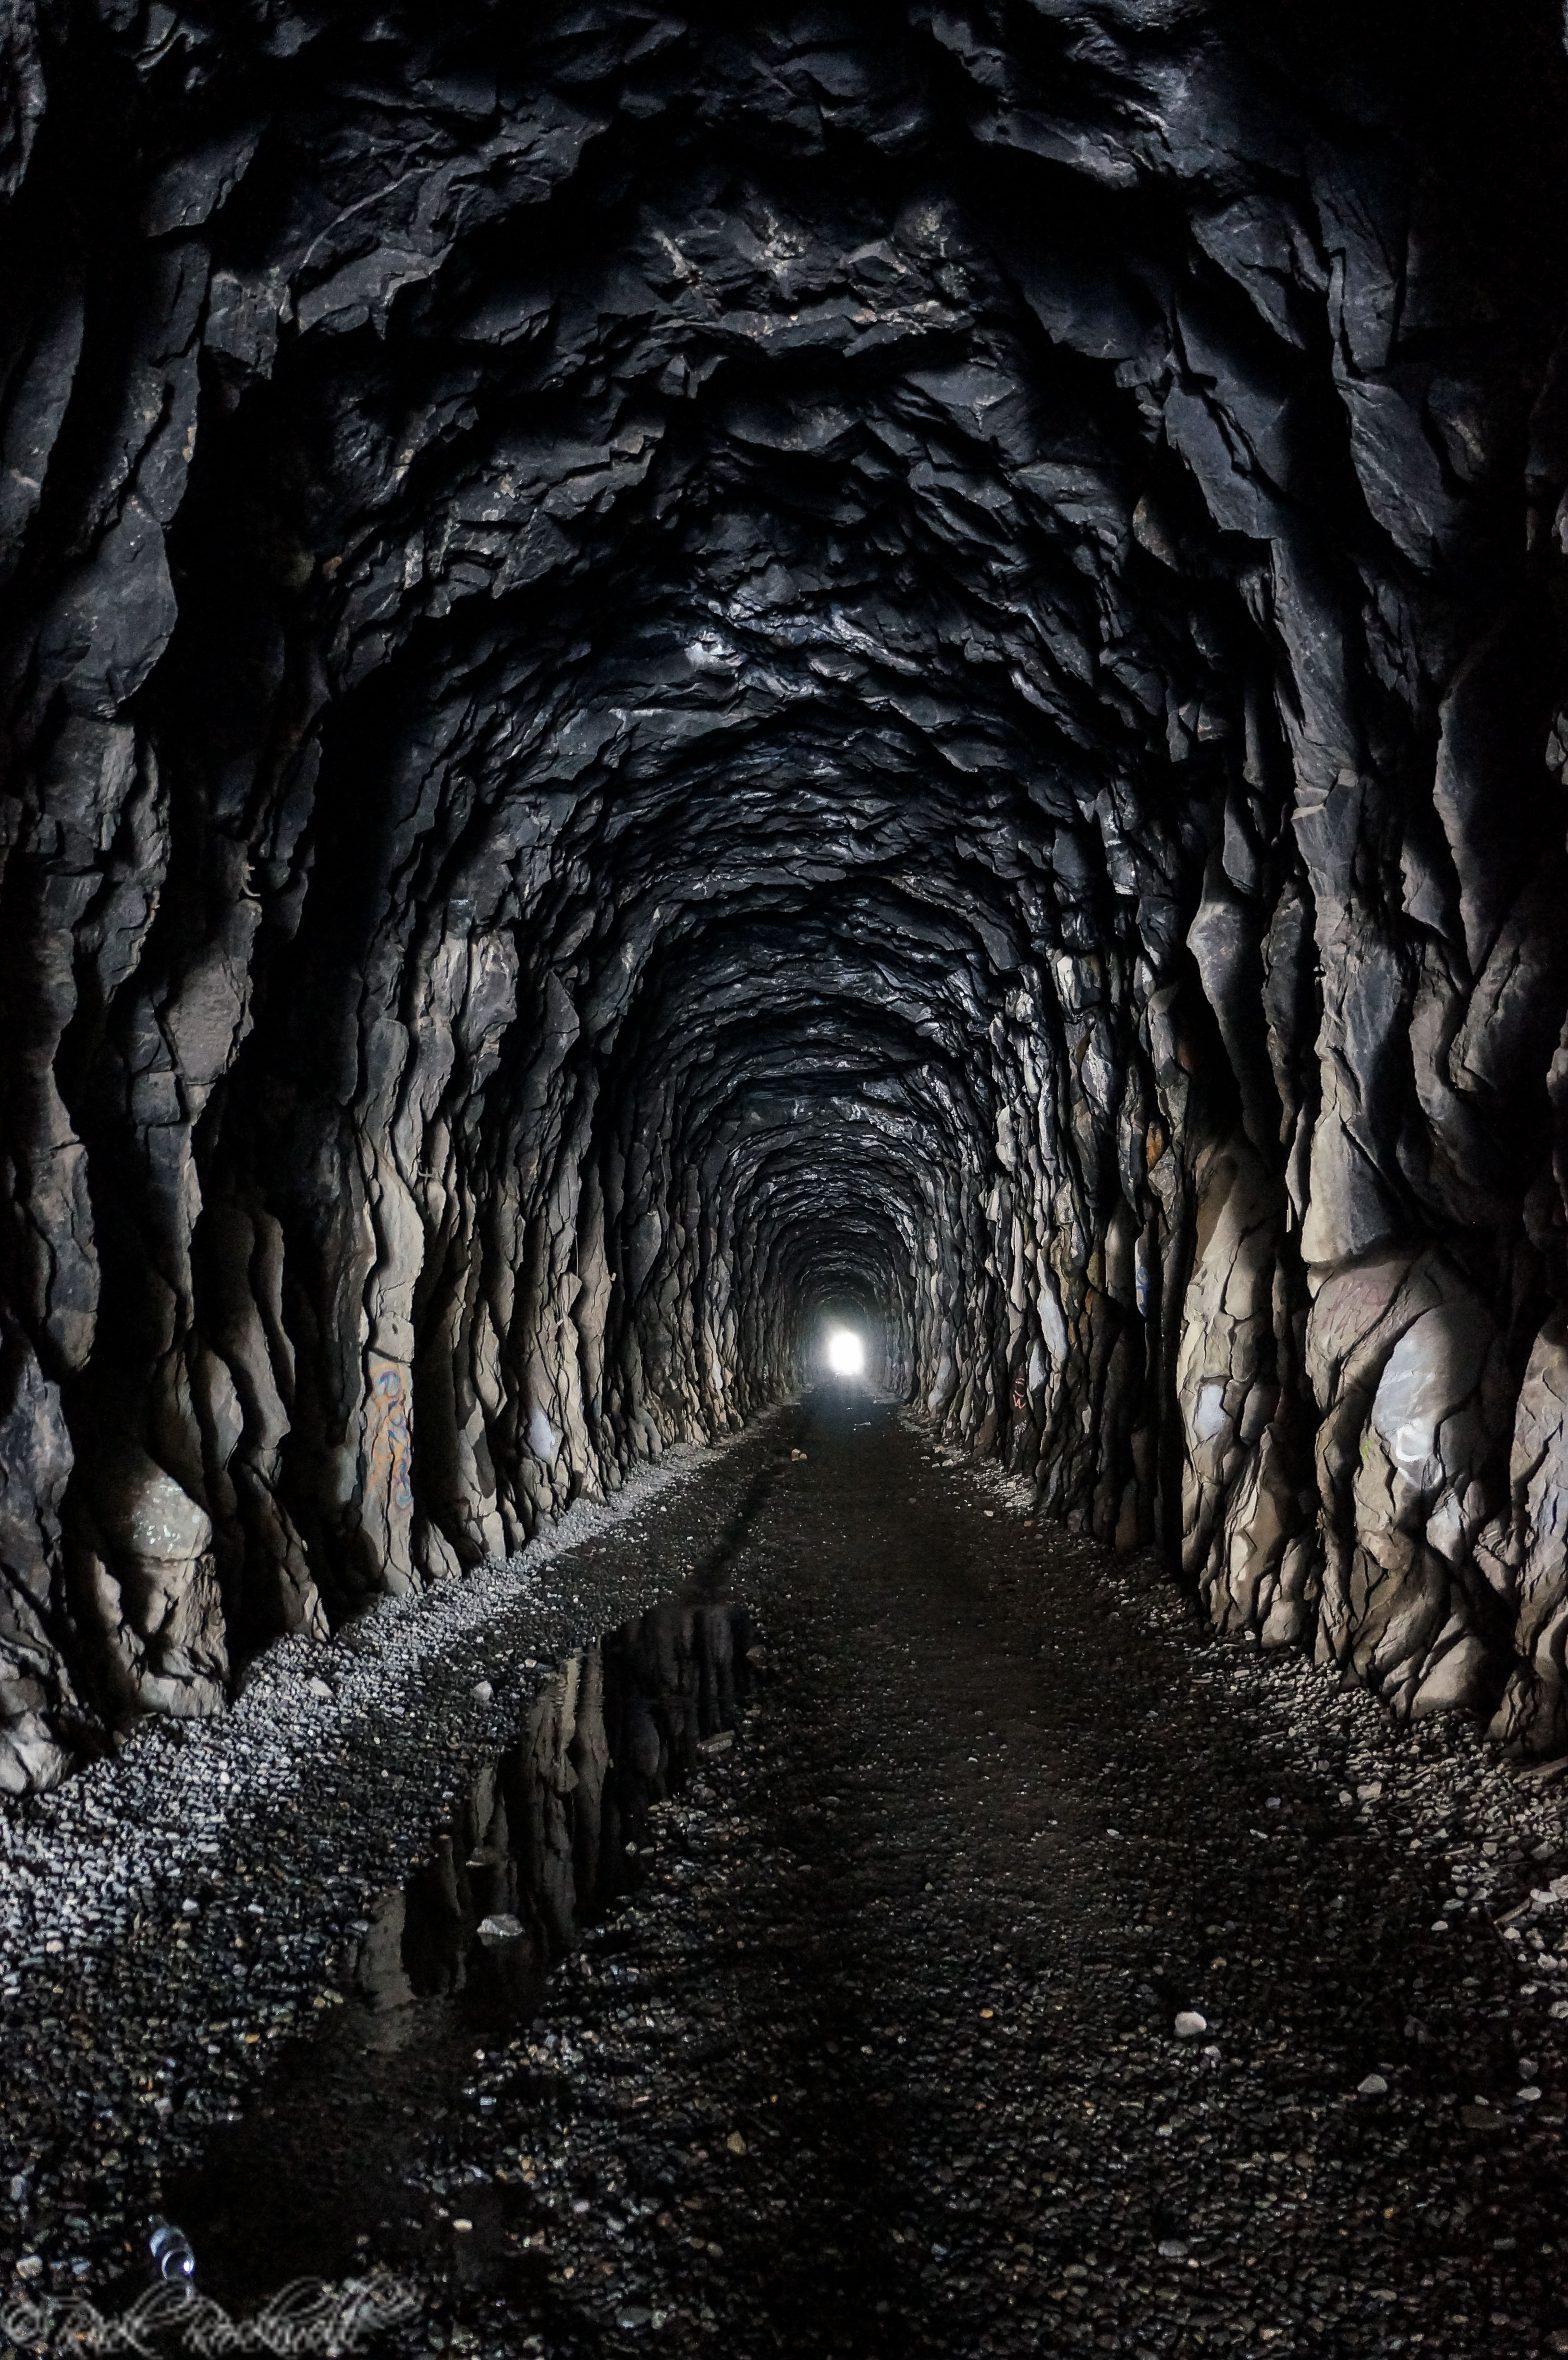 the tunnel essay Easton period 5 symbolism essay in literature, symbolism can take many forms a symbol can be a figure of speech where an object, person, or situation has.